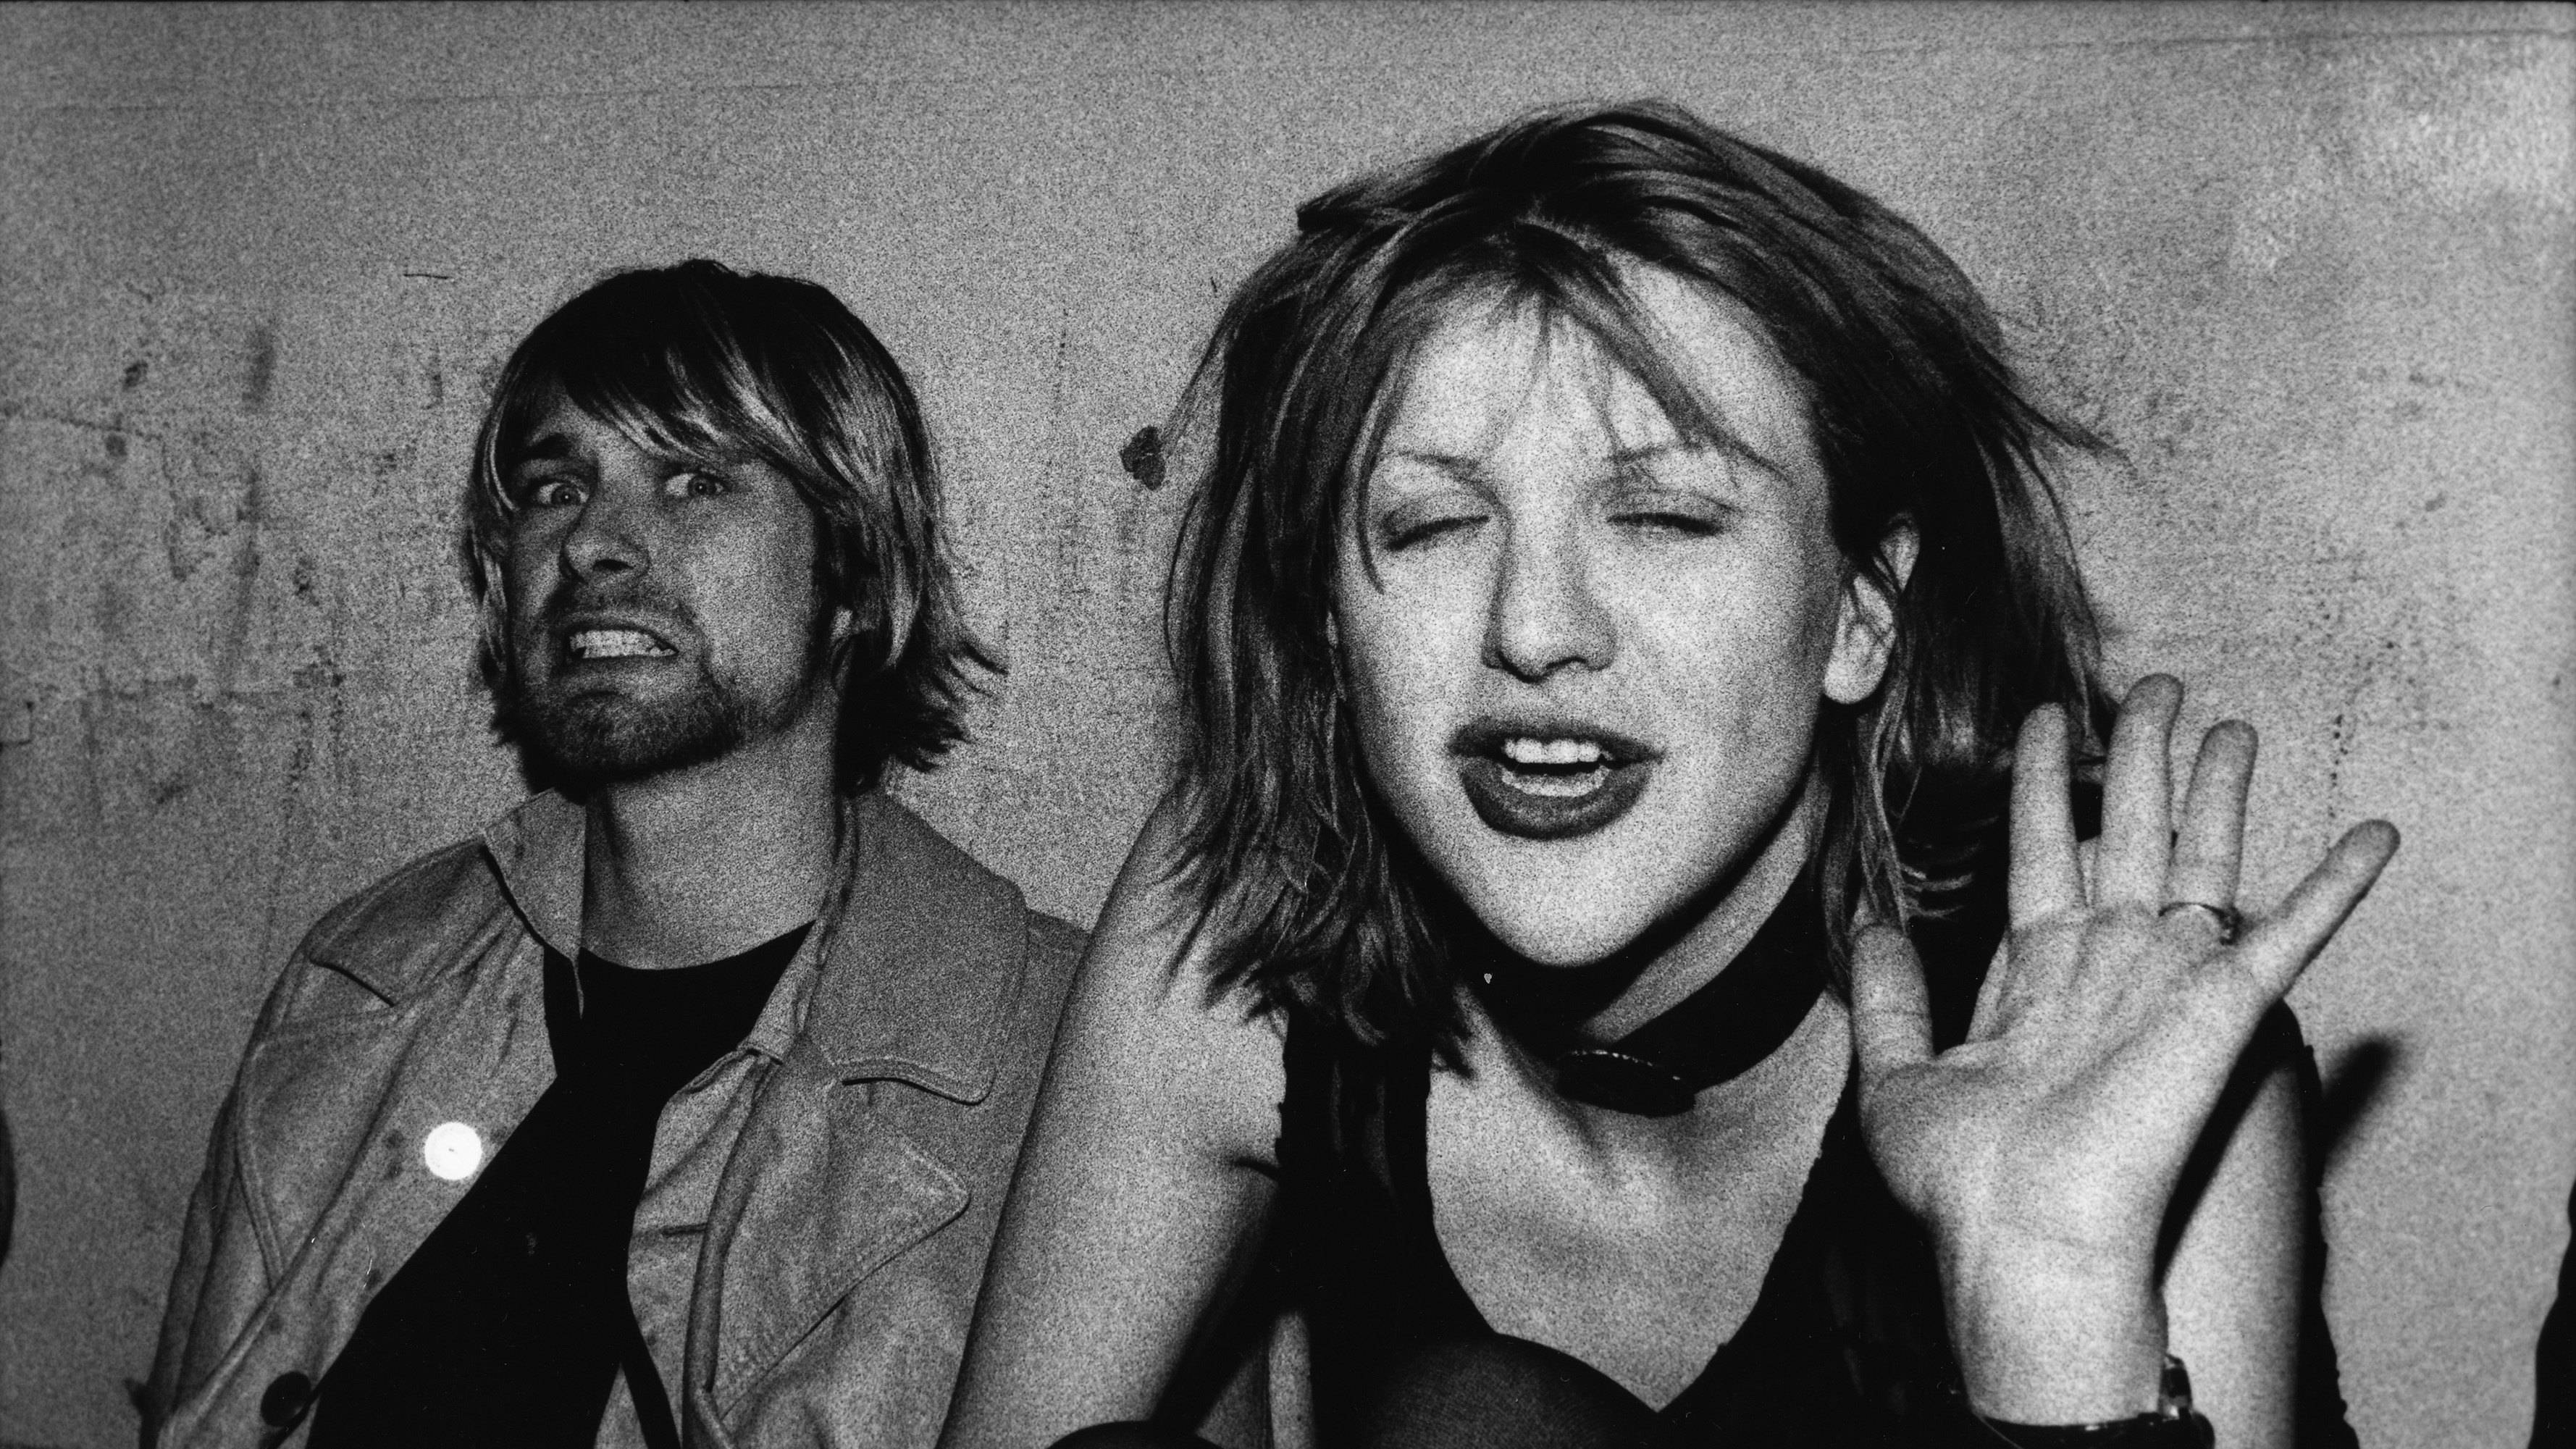 Courtney Love reveals she was visited by Kurt Cobain's ghost